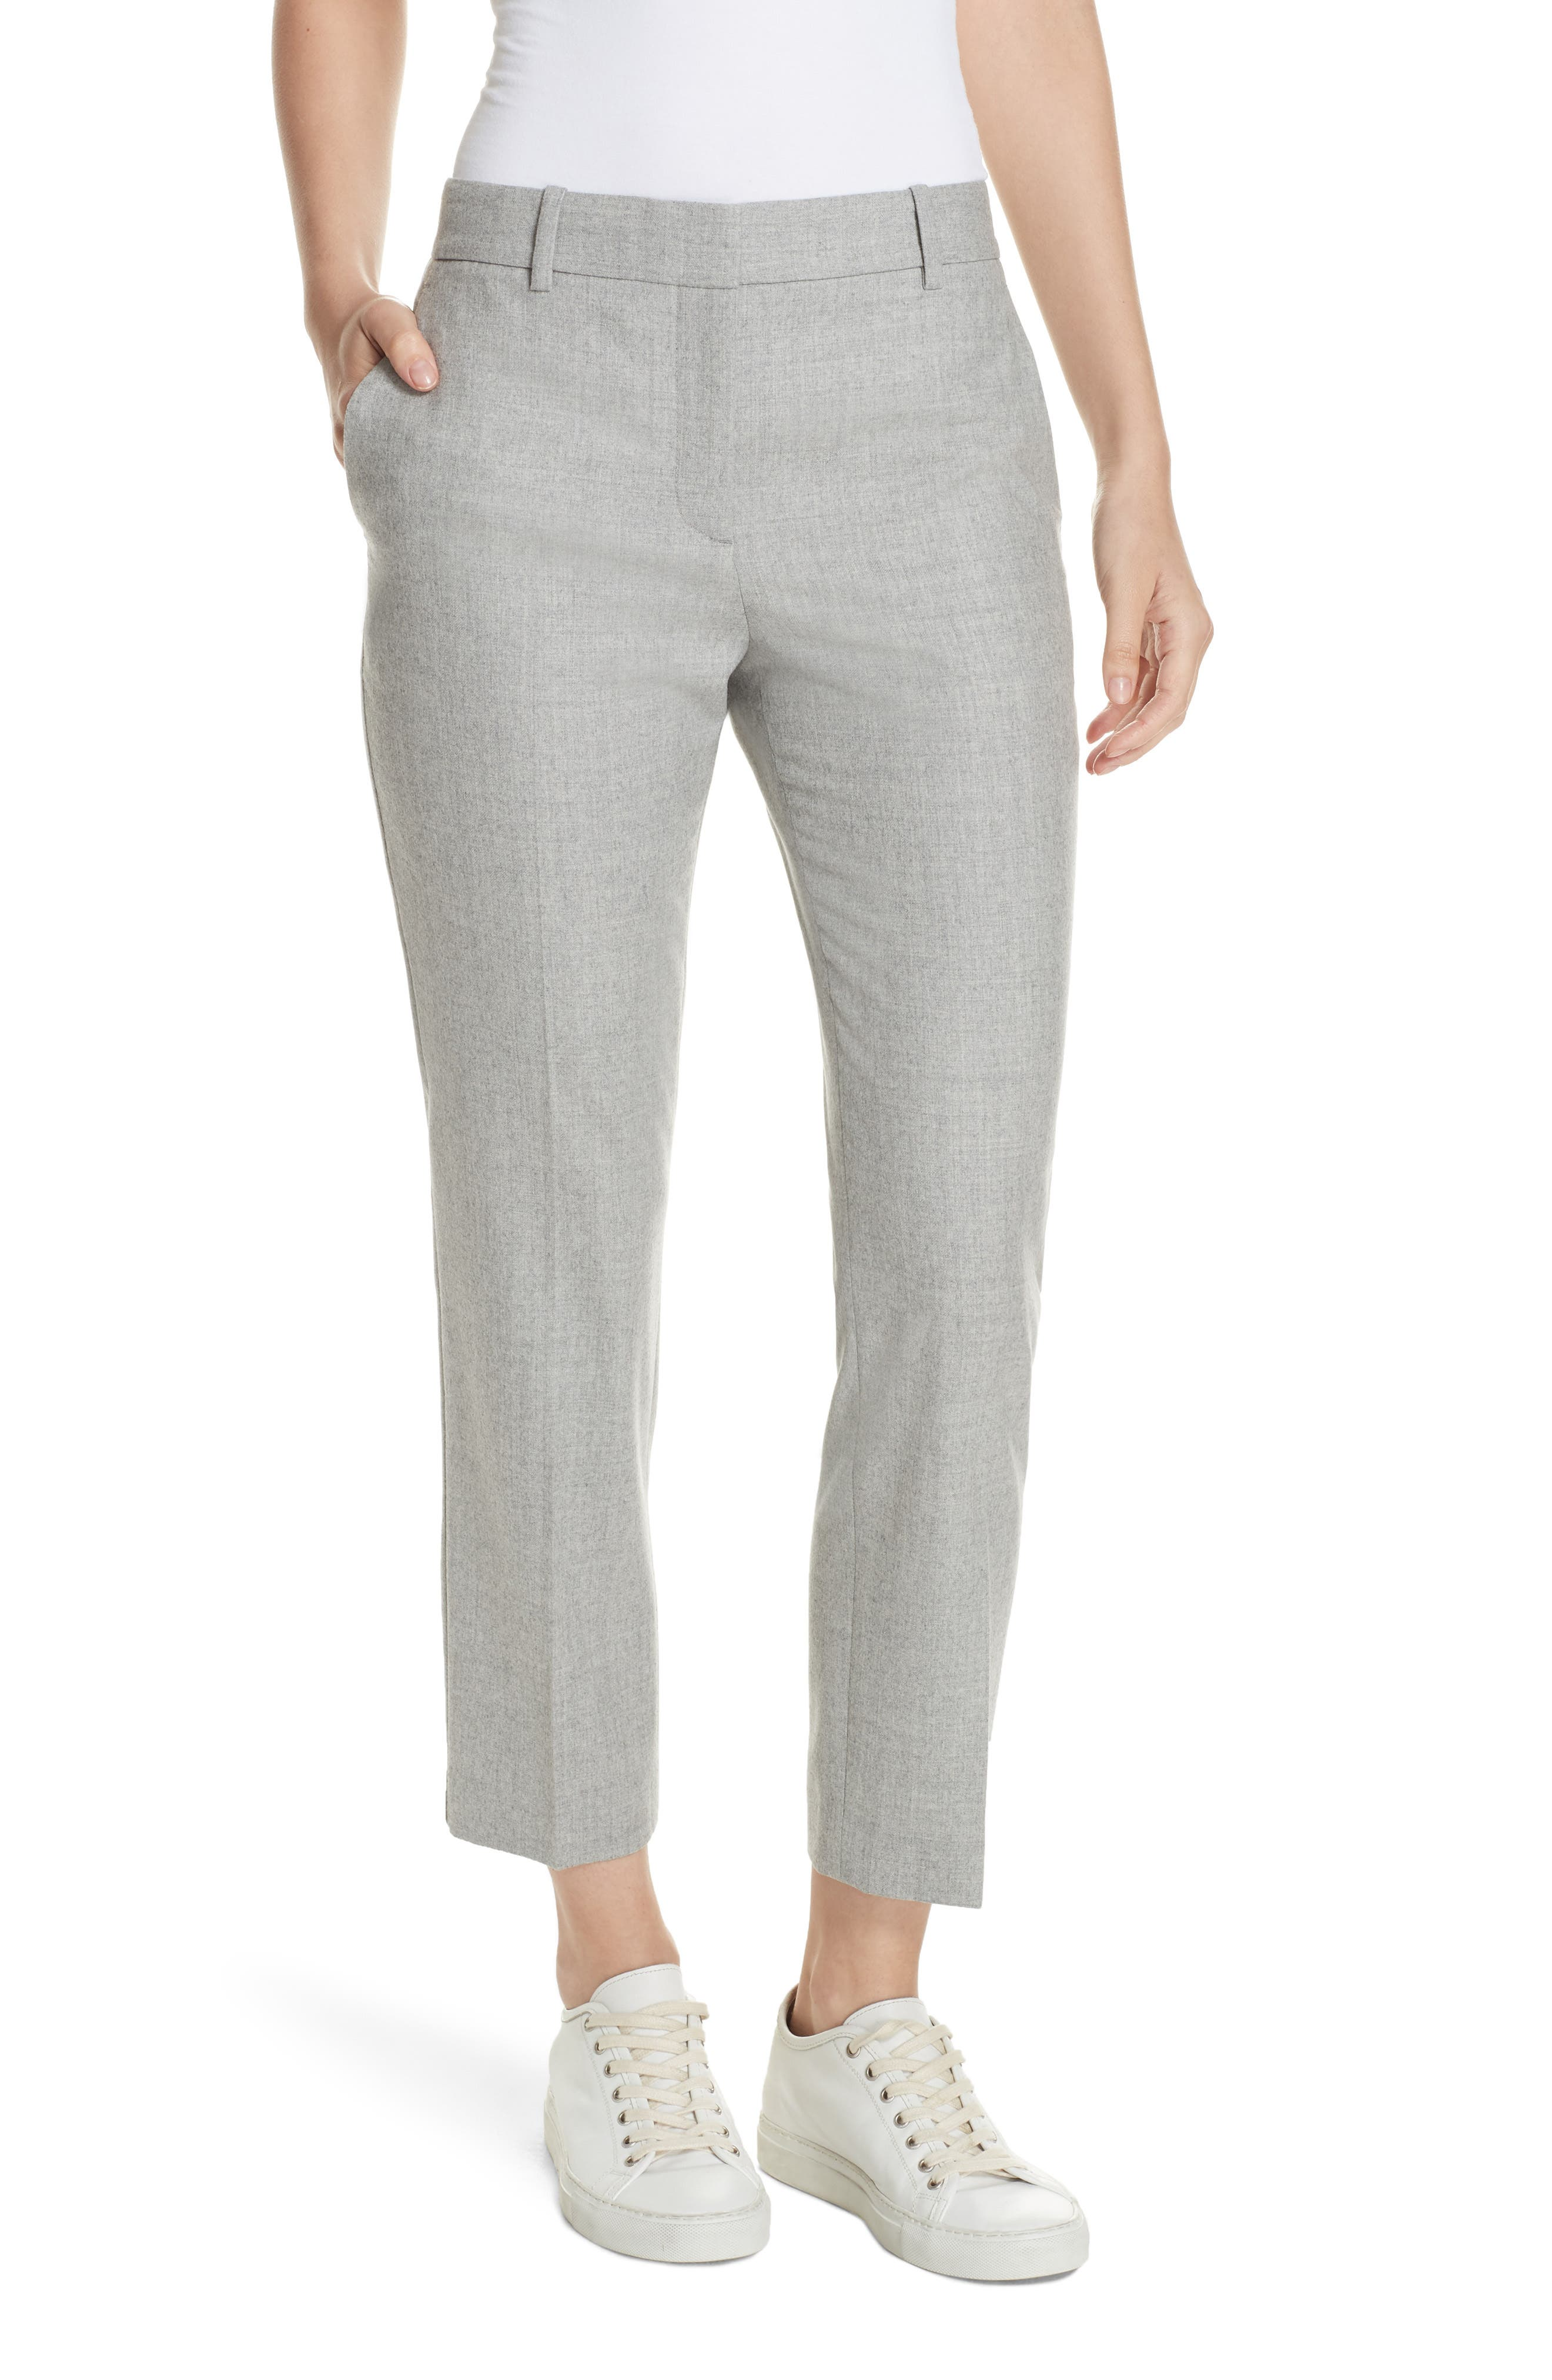 Treeca Flannel Ankle Pants,                         Main,                         color, PALE GREY